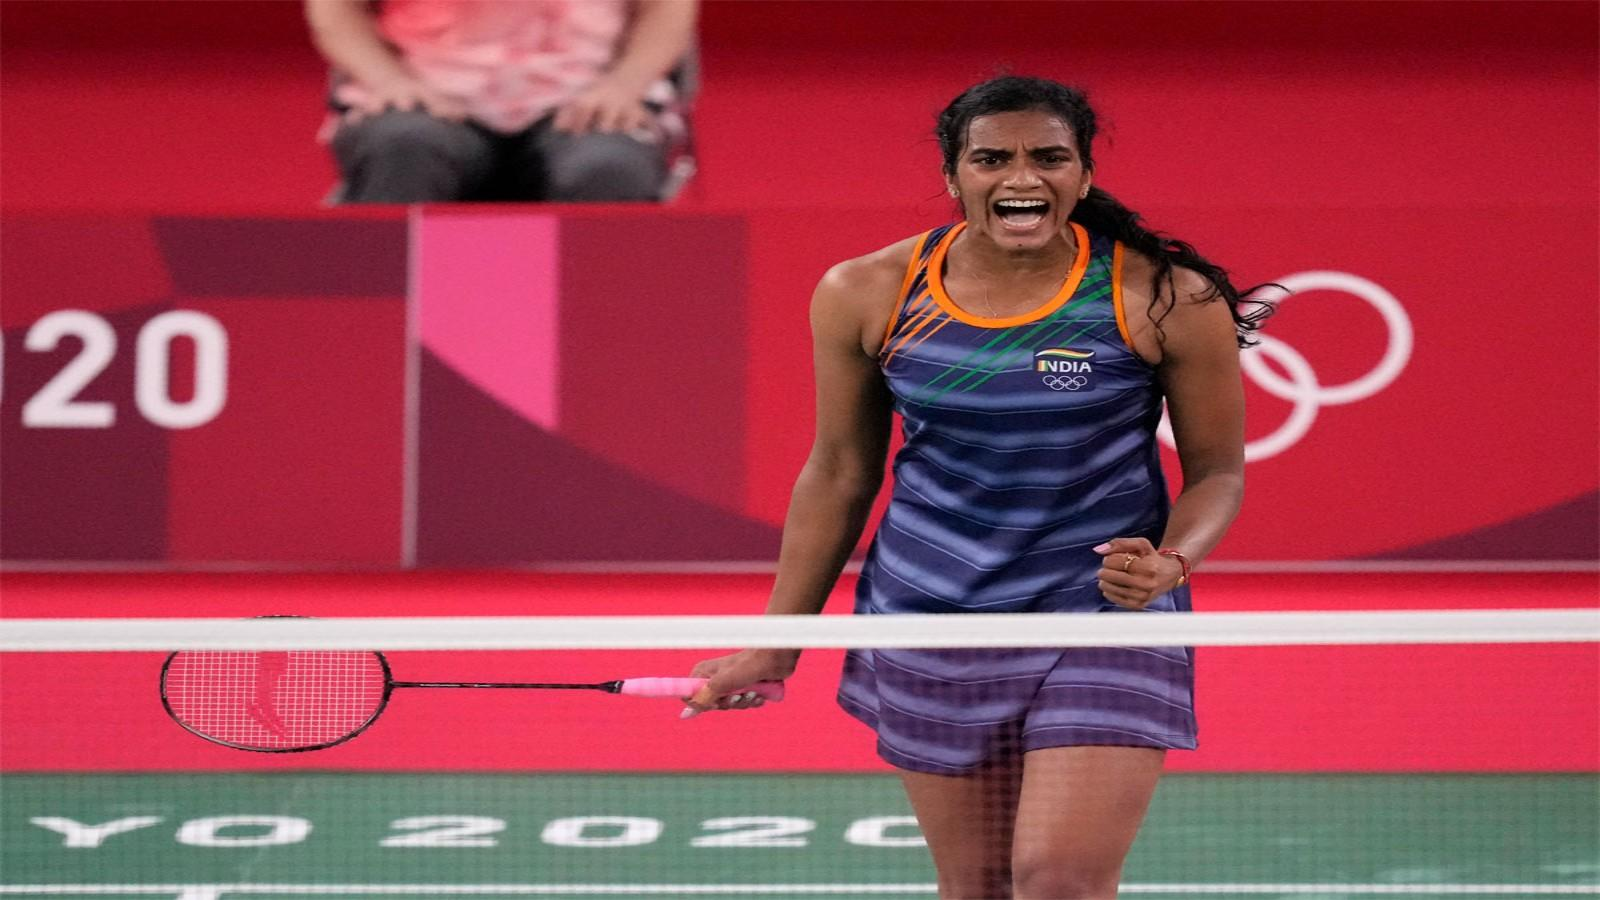 tokyo-olympics-2020-badminton-star-pv-sindhu-wins-quarters-set-to-compete-in-semifinals